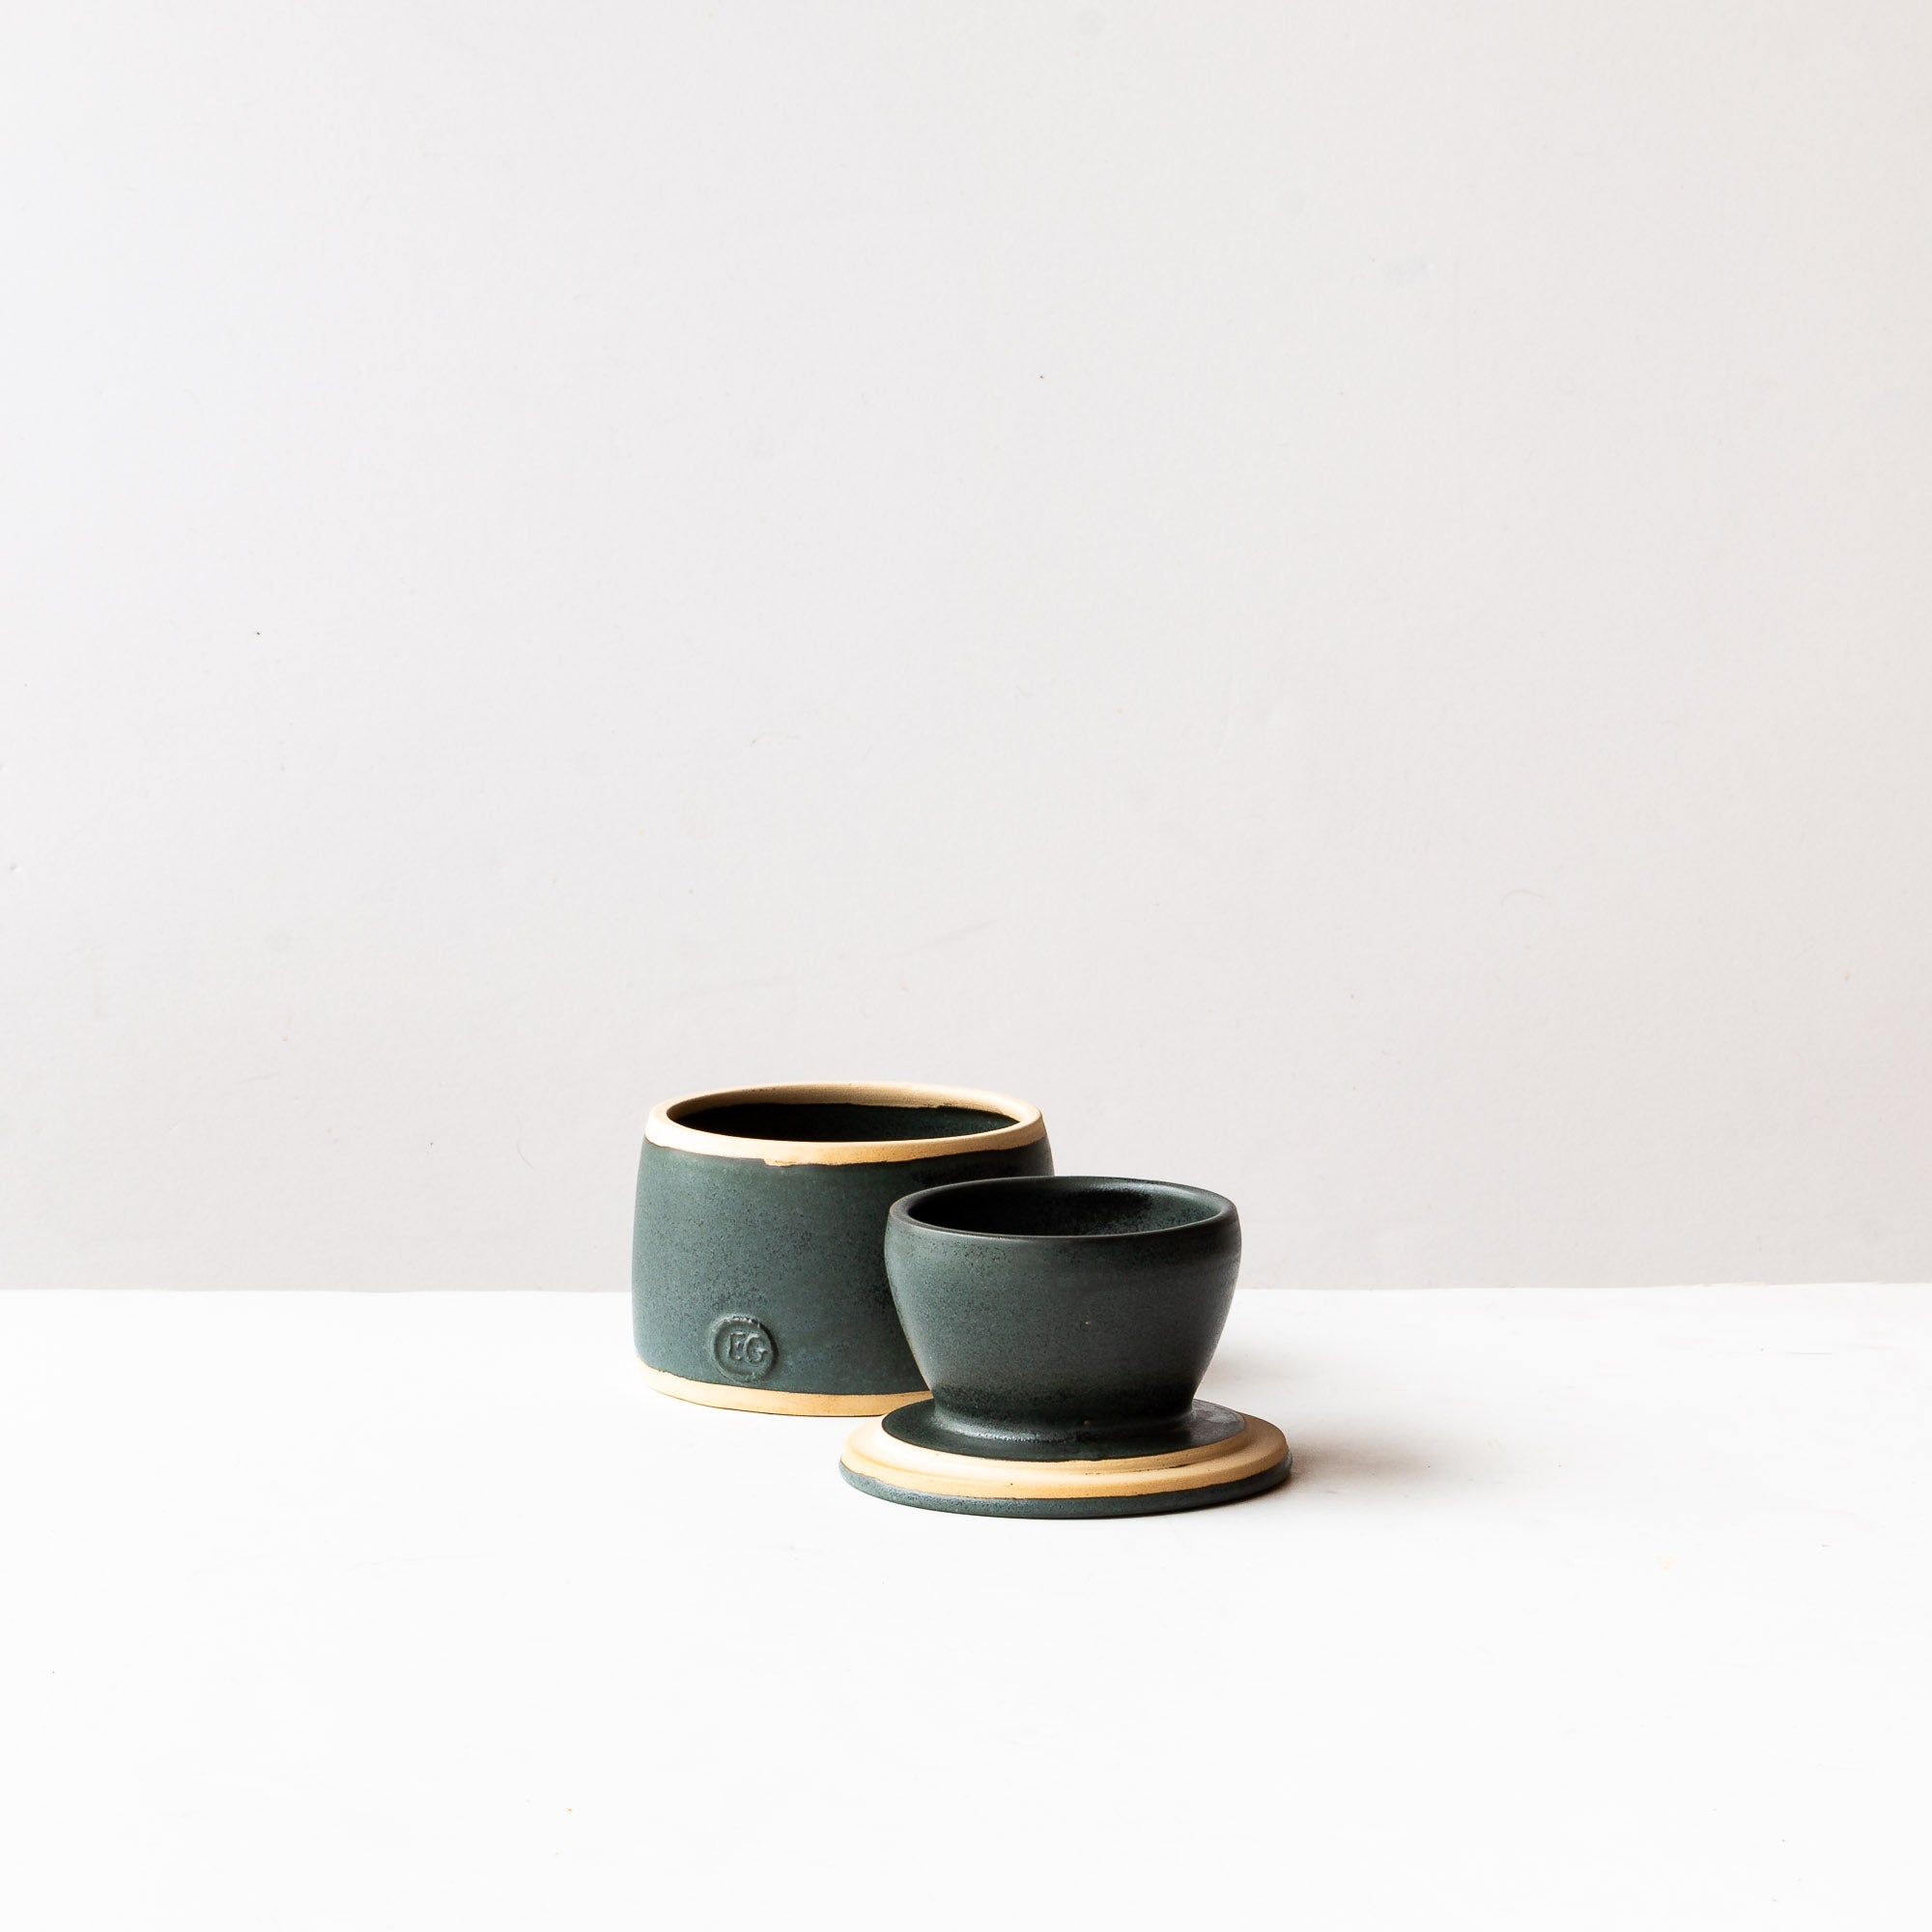 Handmade Small French Butter Crock in Charcoal Glazed Stoneware - Sold by Chic & Basta